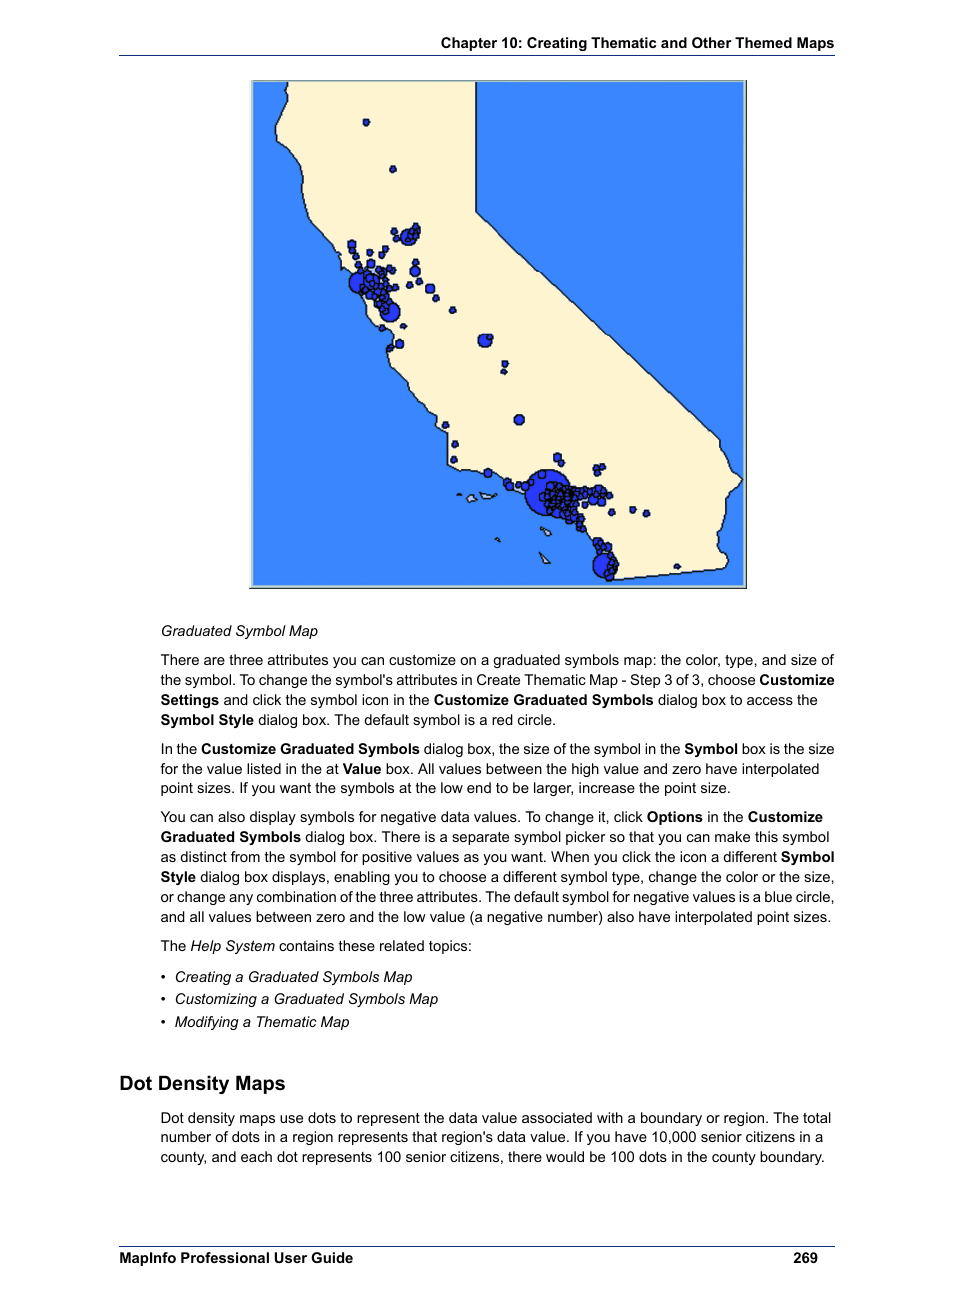 Dot Density Maps Pitney Bowes Mapinfo Professional User Manual